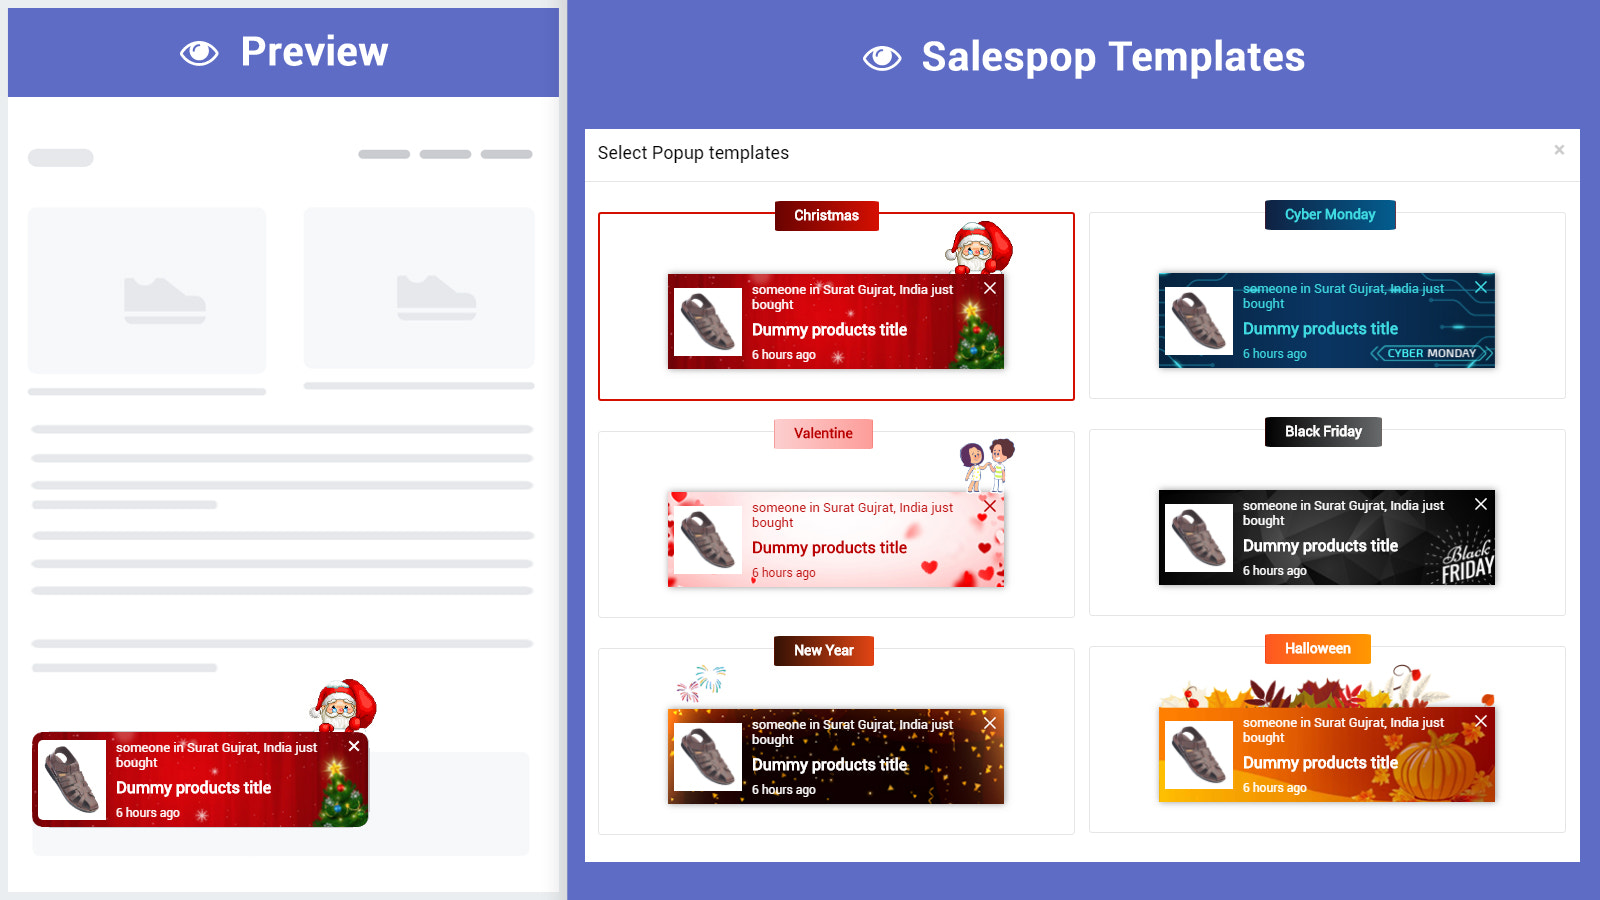 Salespop built-in templates. Ready to use